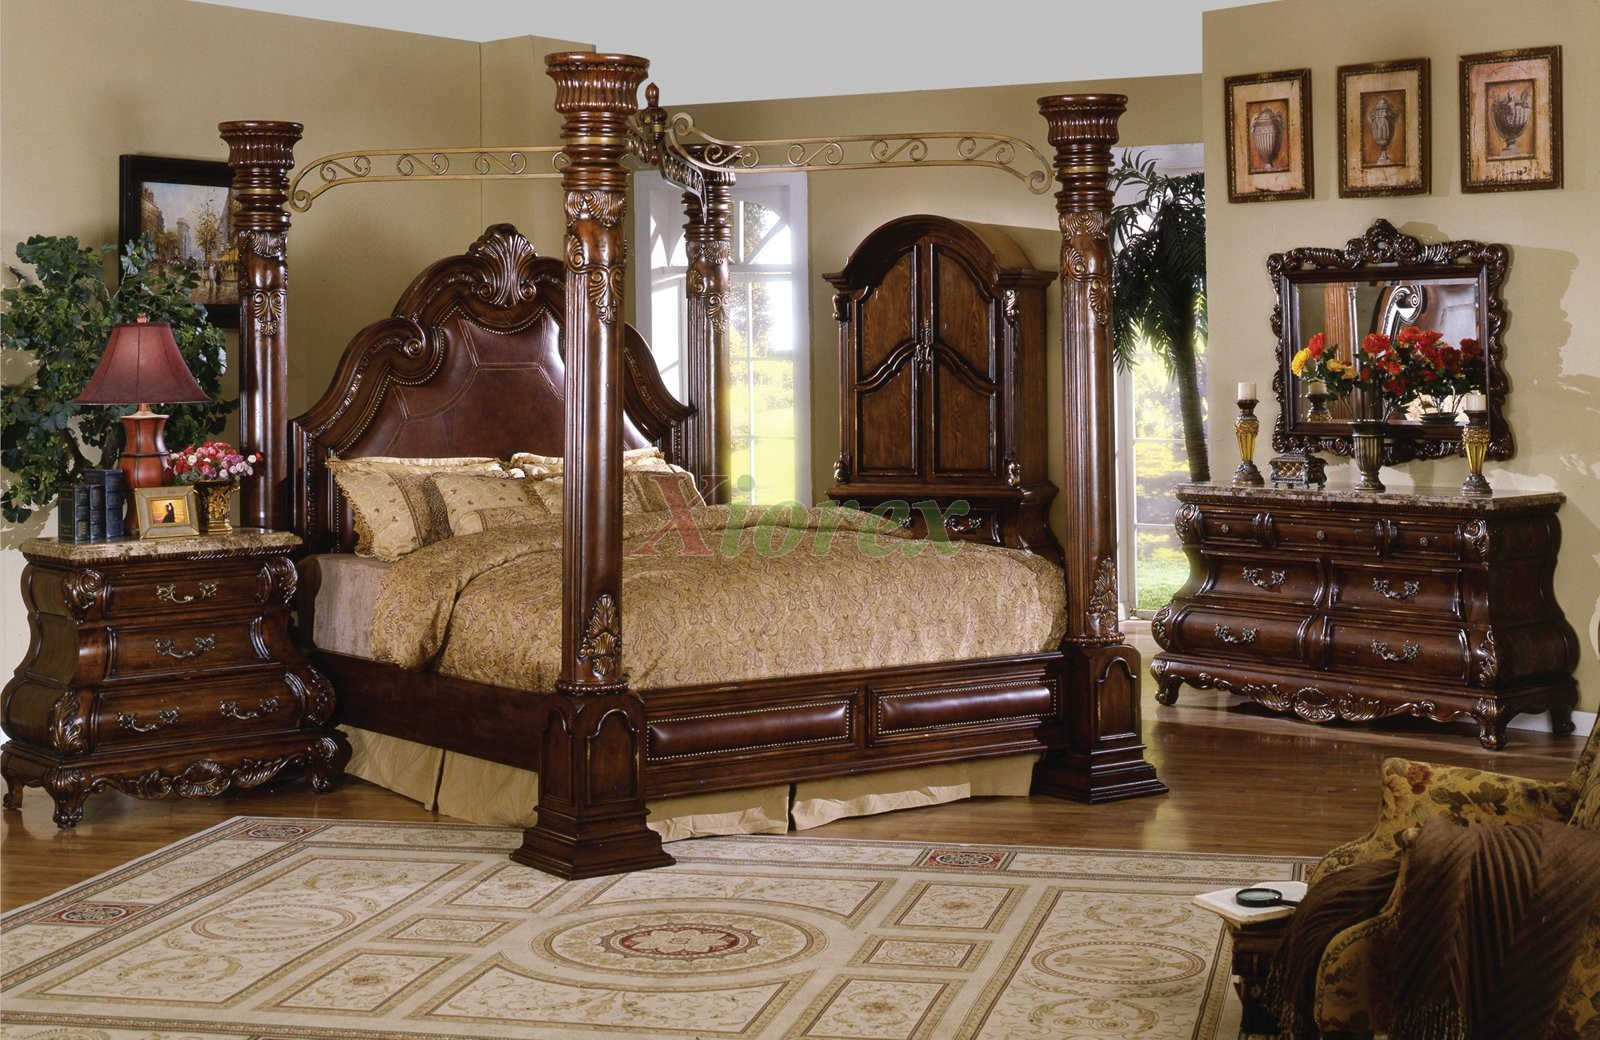 Poster Bedroom Set w  Leather Headboard Queen Bed and King Bed   Xiorex. Traditional Poster Bedroom Furniture Set Metal Canopy Leather